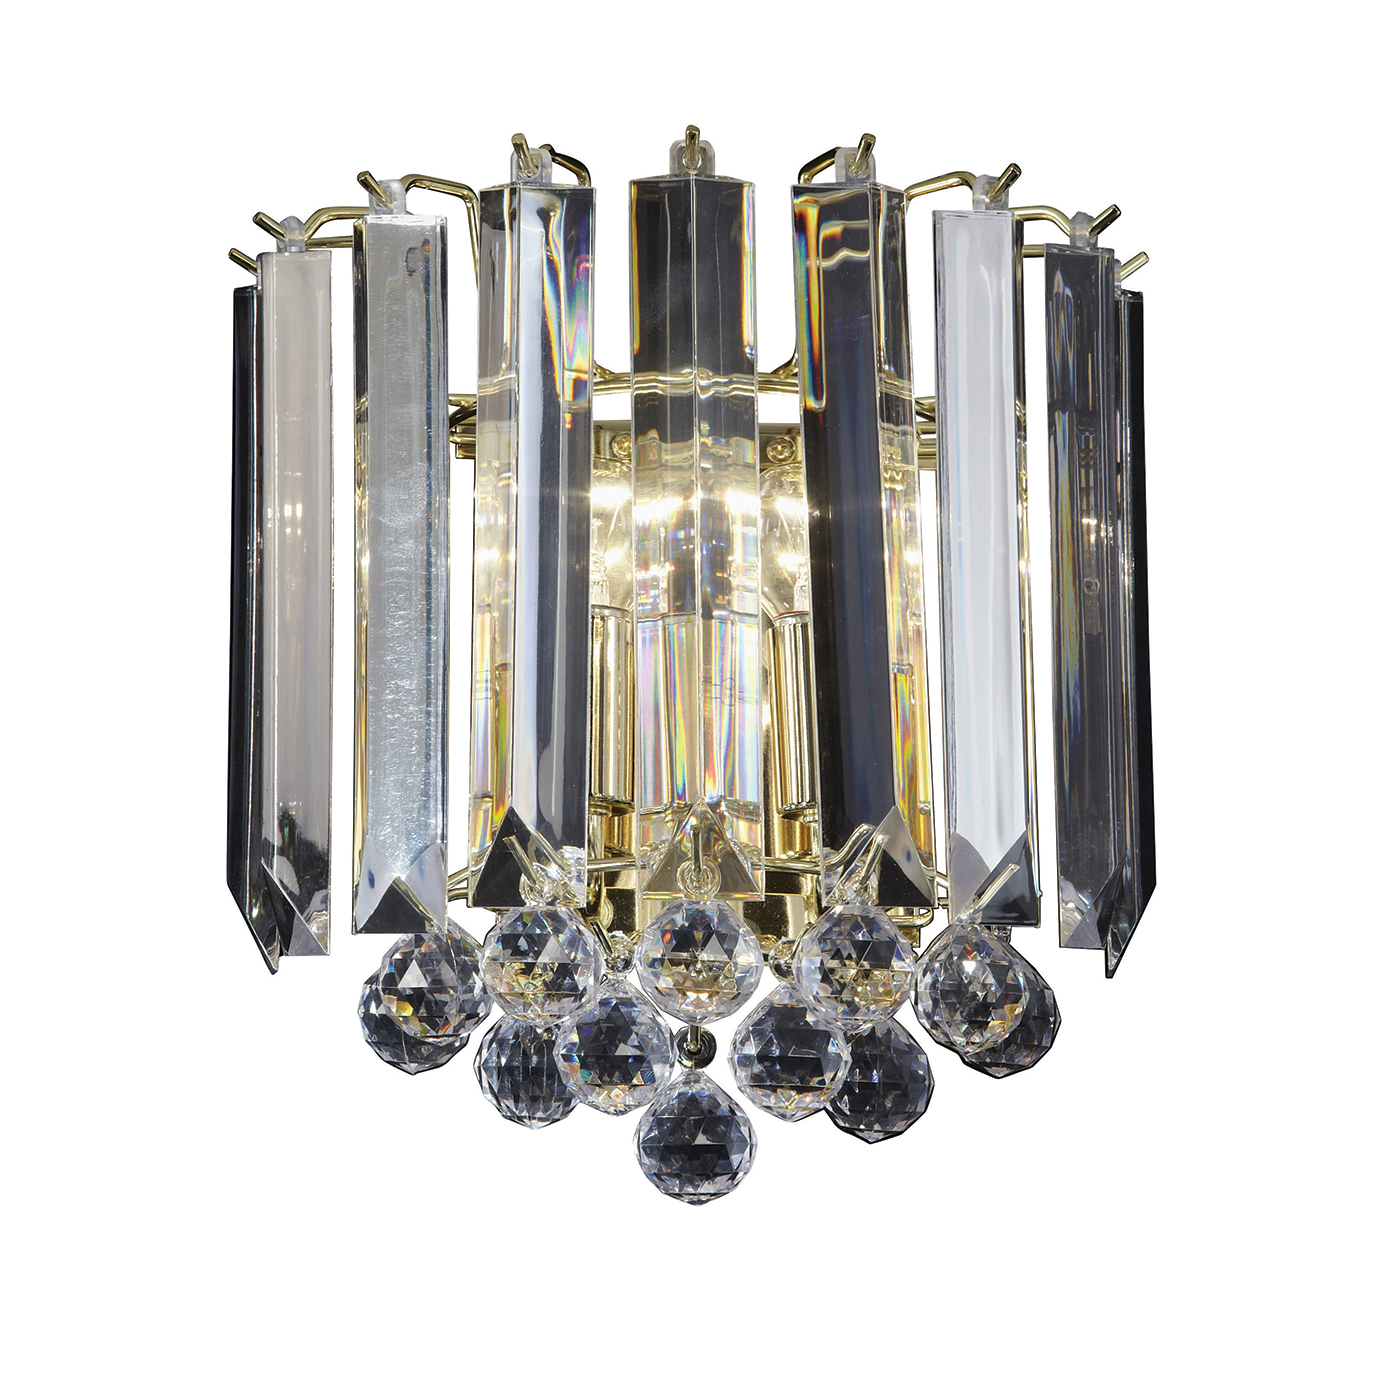 Endon Fargo 2lt wall chandelier light 60W Brass effect plate & clear acrylic Thumbnail 1